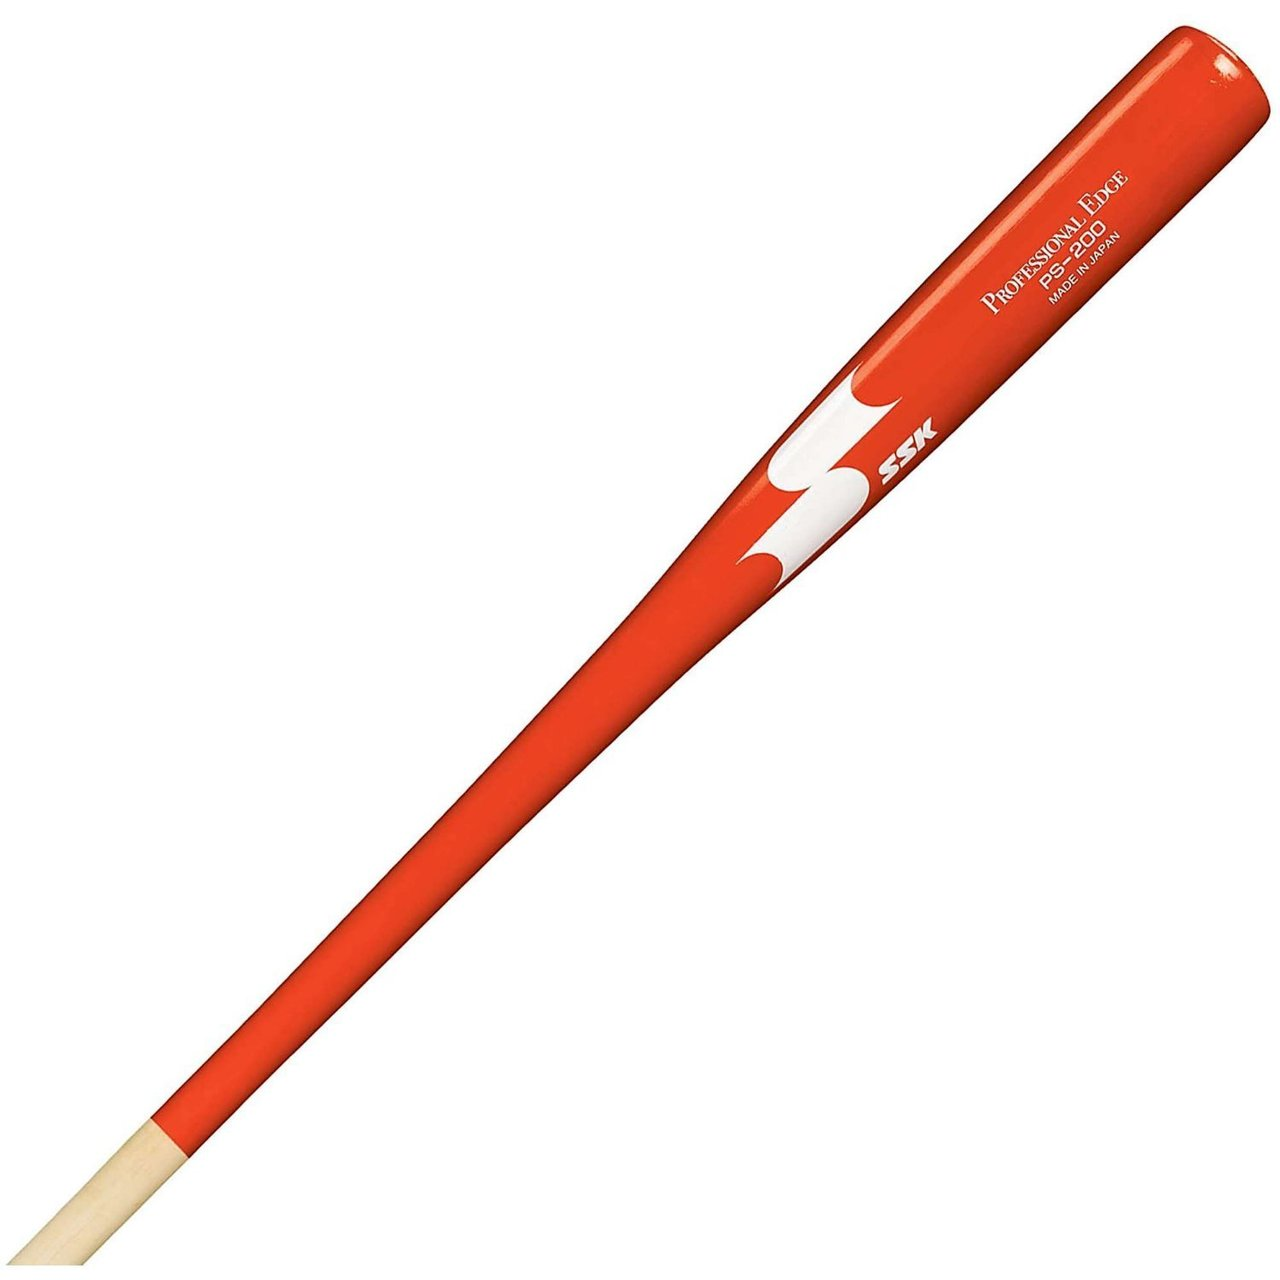 ssk-ps-100r-red-33-inch-fungo-bat PS100-R SSK 083351448479 SSK 33 Wood Fungo Bat The most sought after wood Fungo